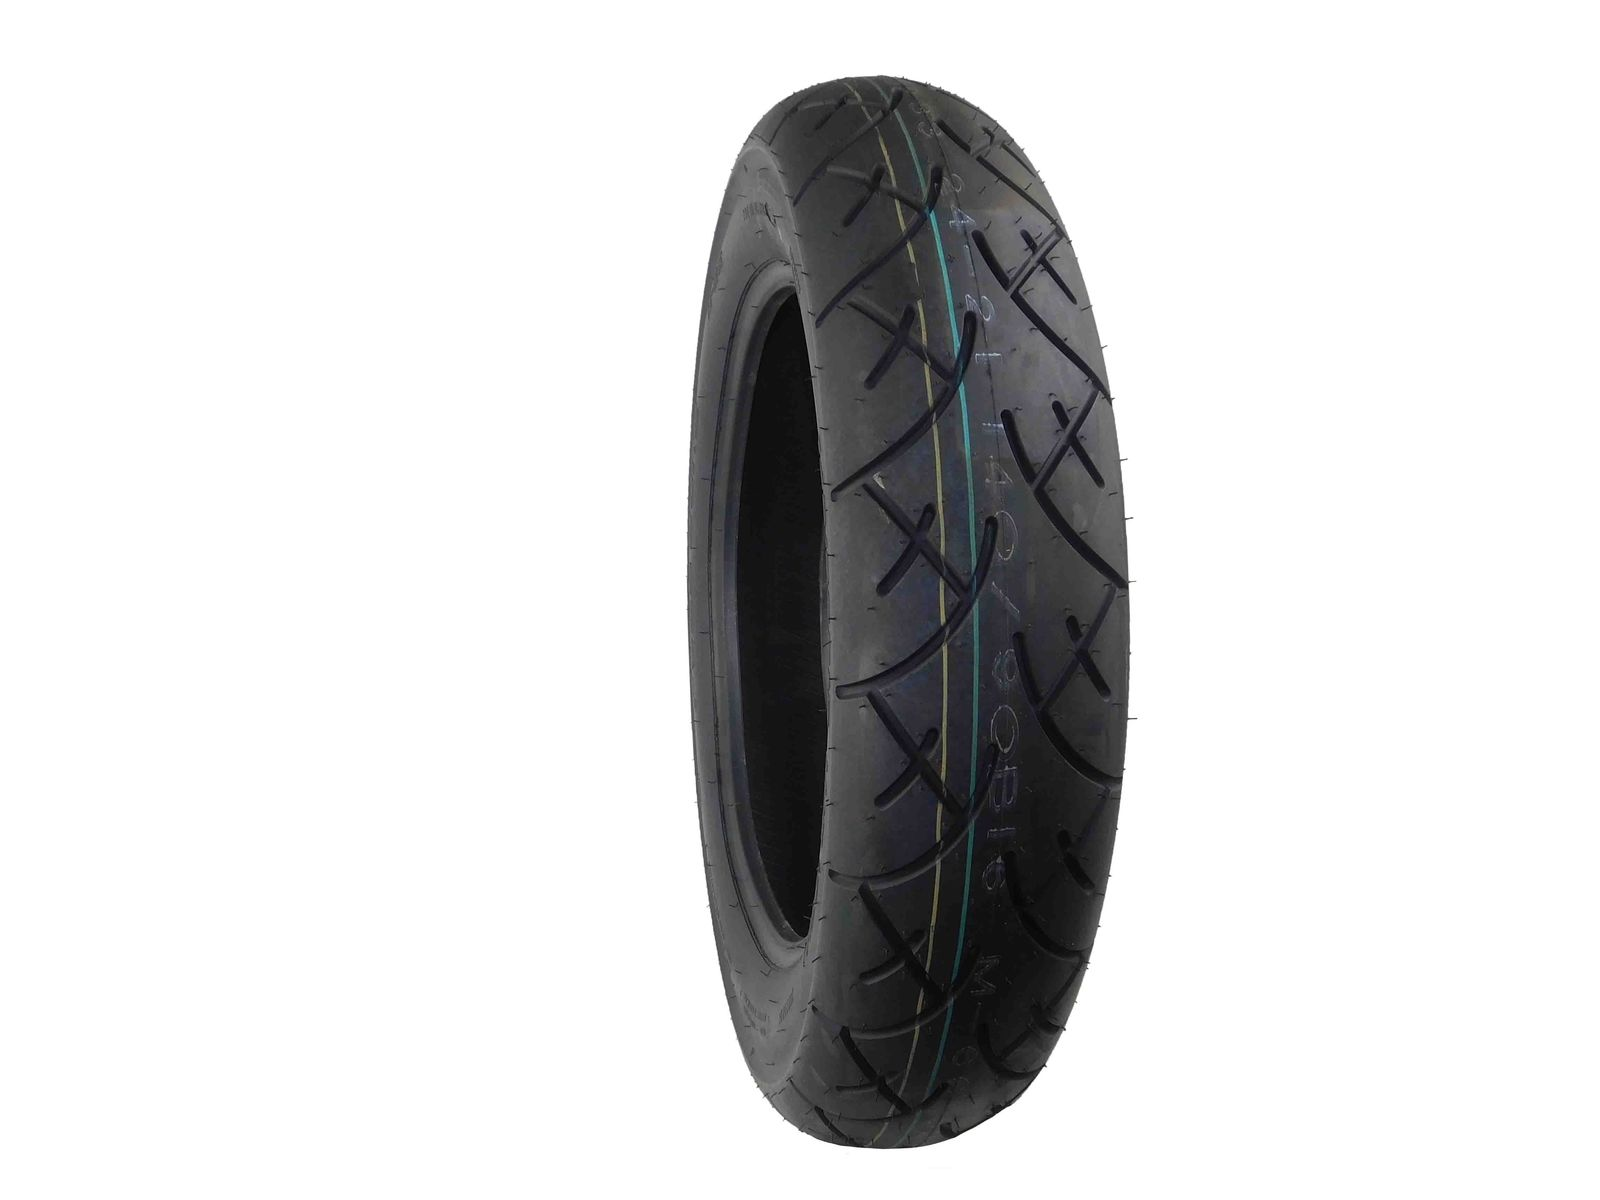 Full-Bore-80-90-21-Front-140-90-16-Rear-Cruisers-Motorcycle-Tires-image-4